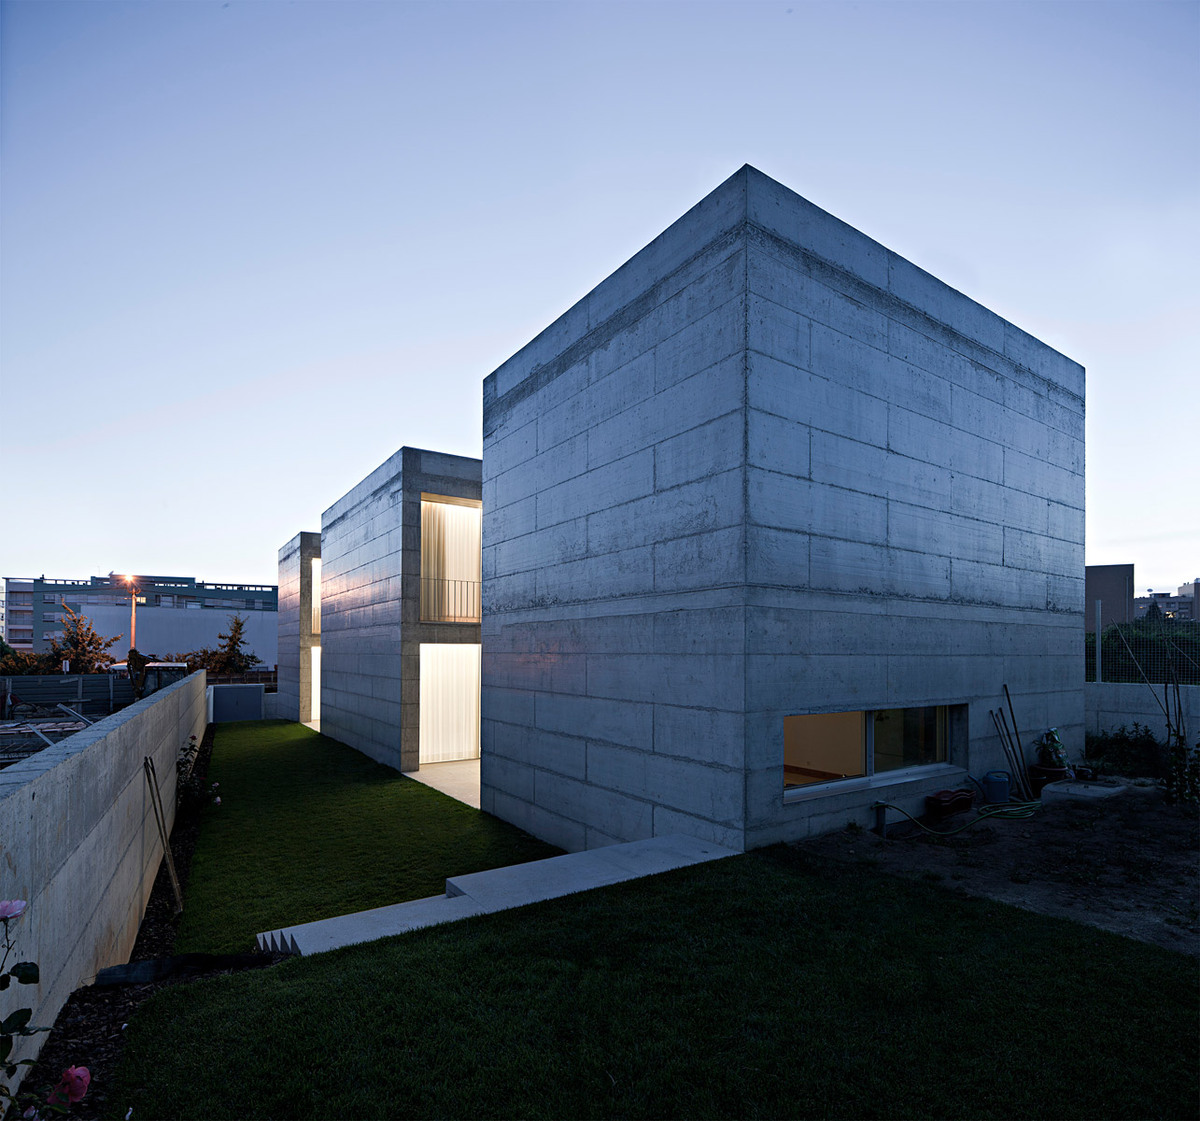 Exterior of the house in Moreira, Maia, Portugal (Photo: Javier Callejas)